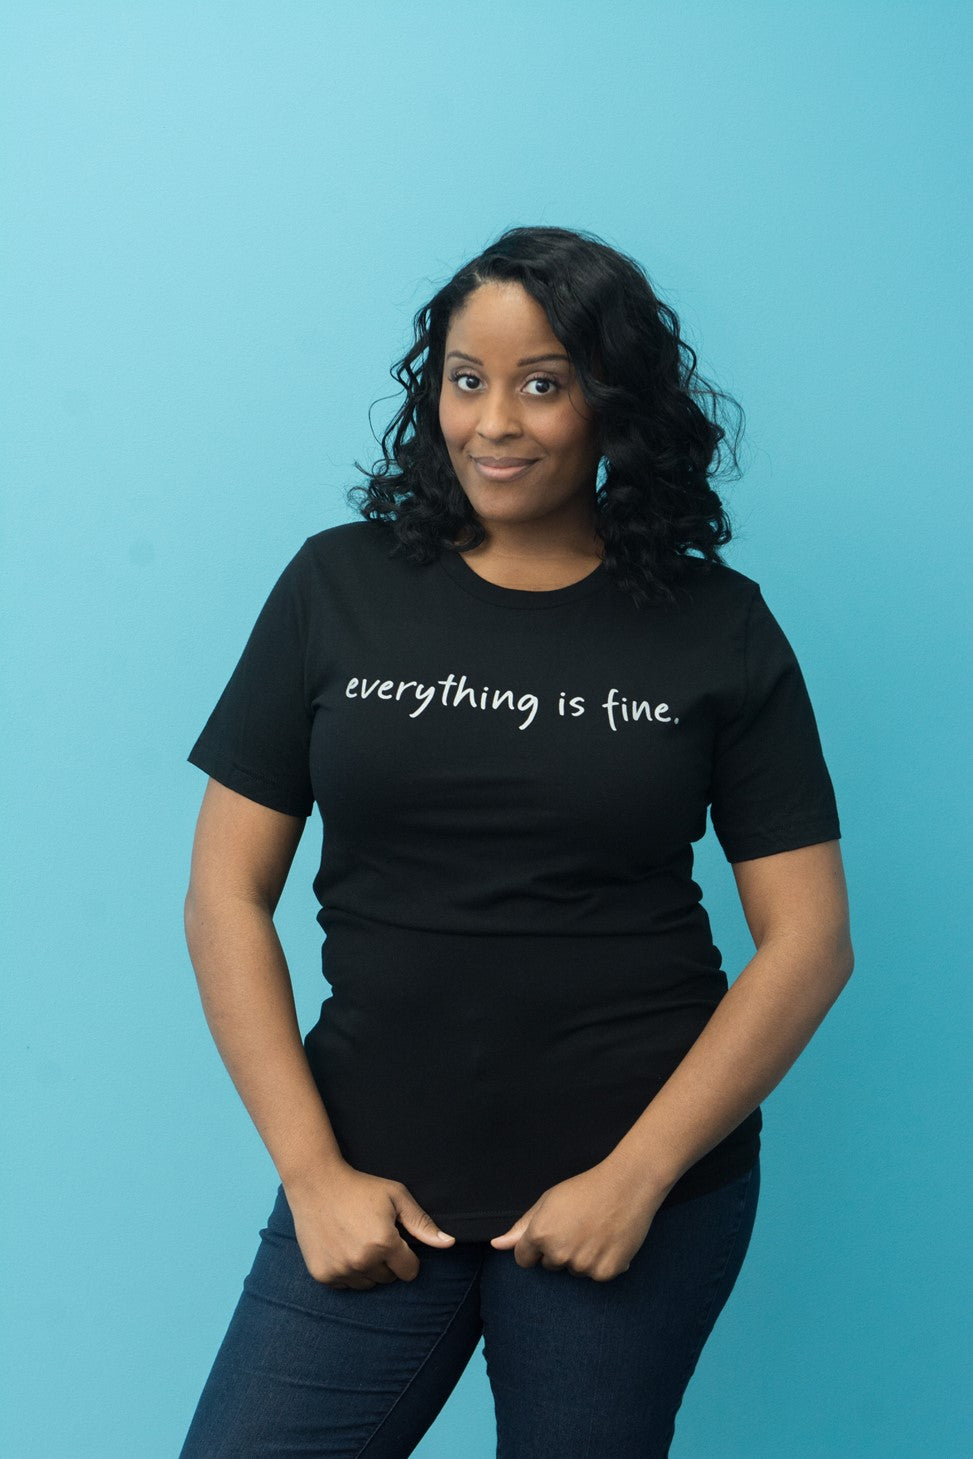 Everything is Fine Shirt